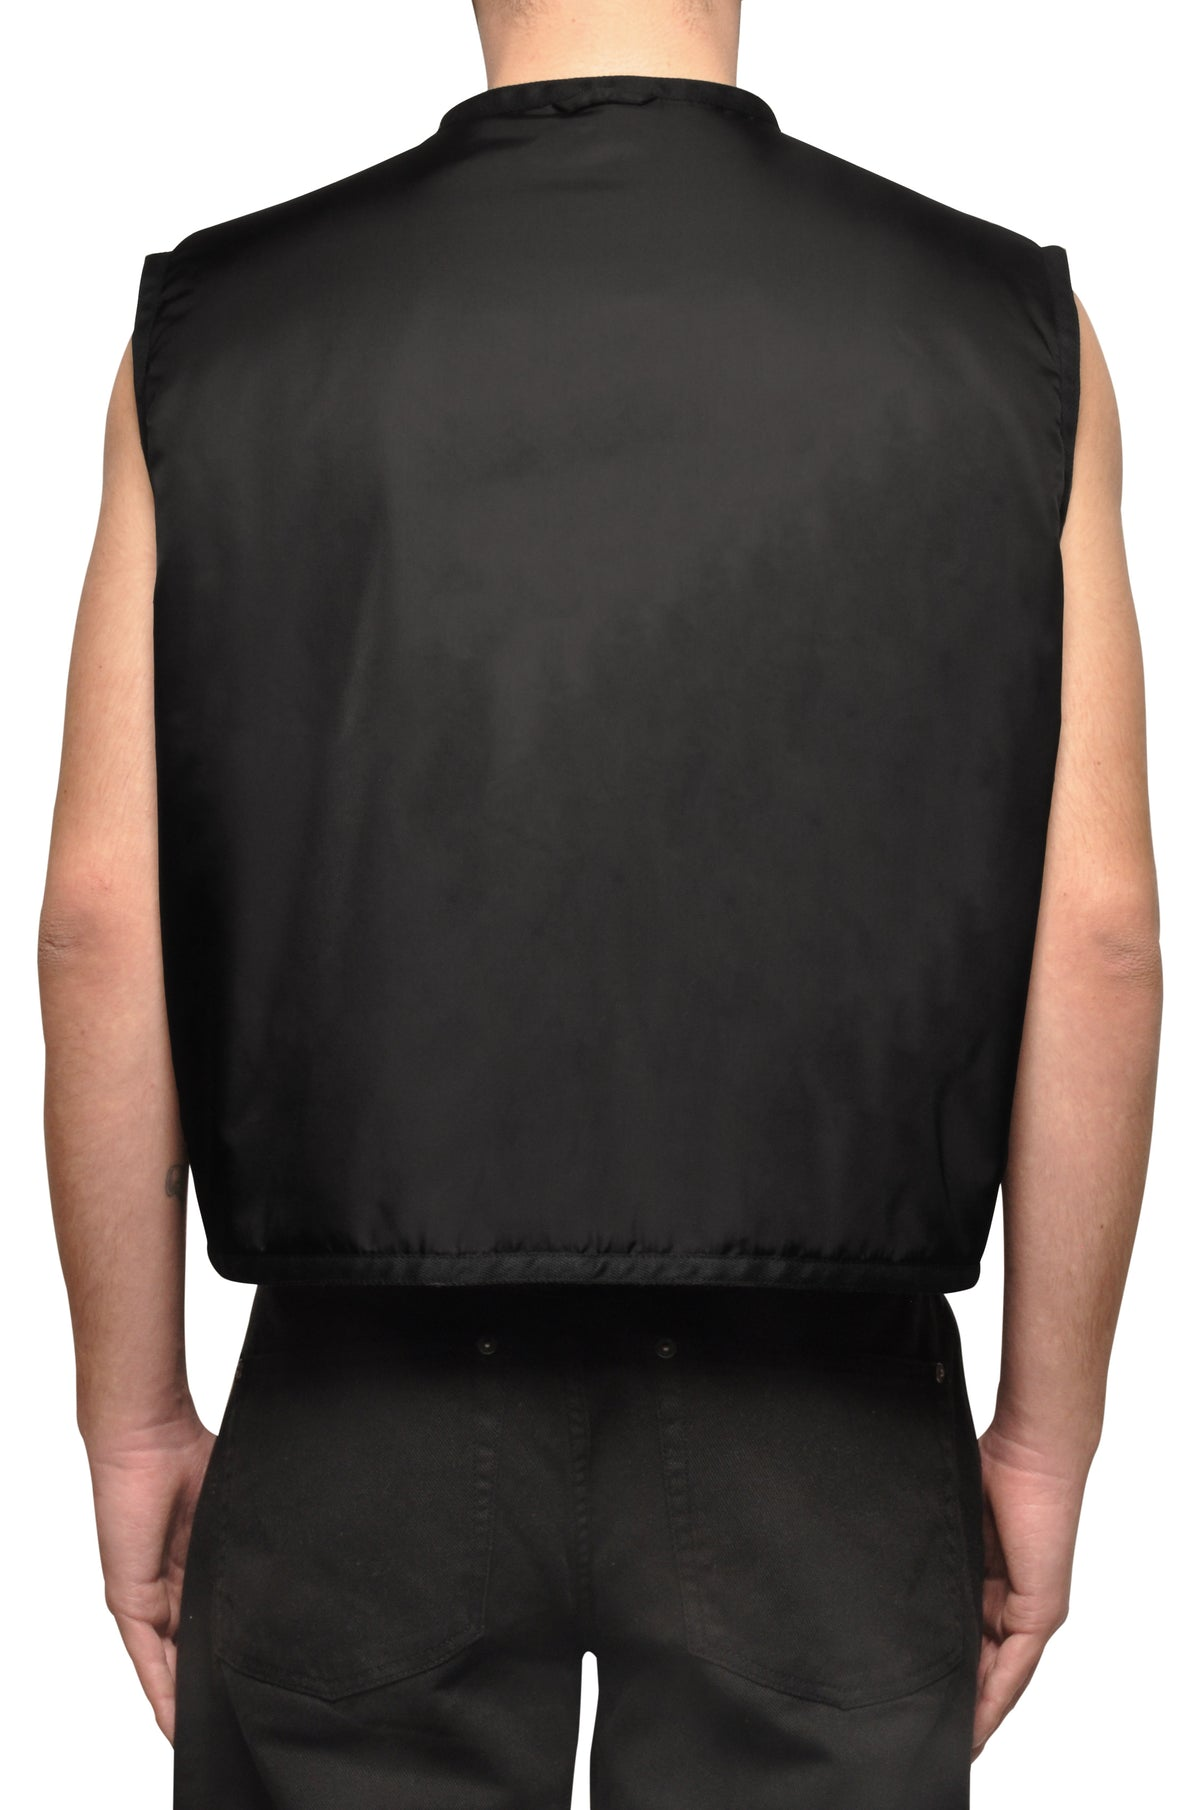 032c COSMIC WORKSHOP 'Rock Bottom' Vest Black - 032c